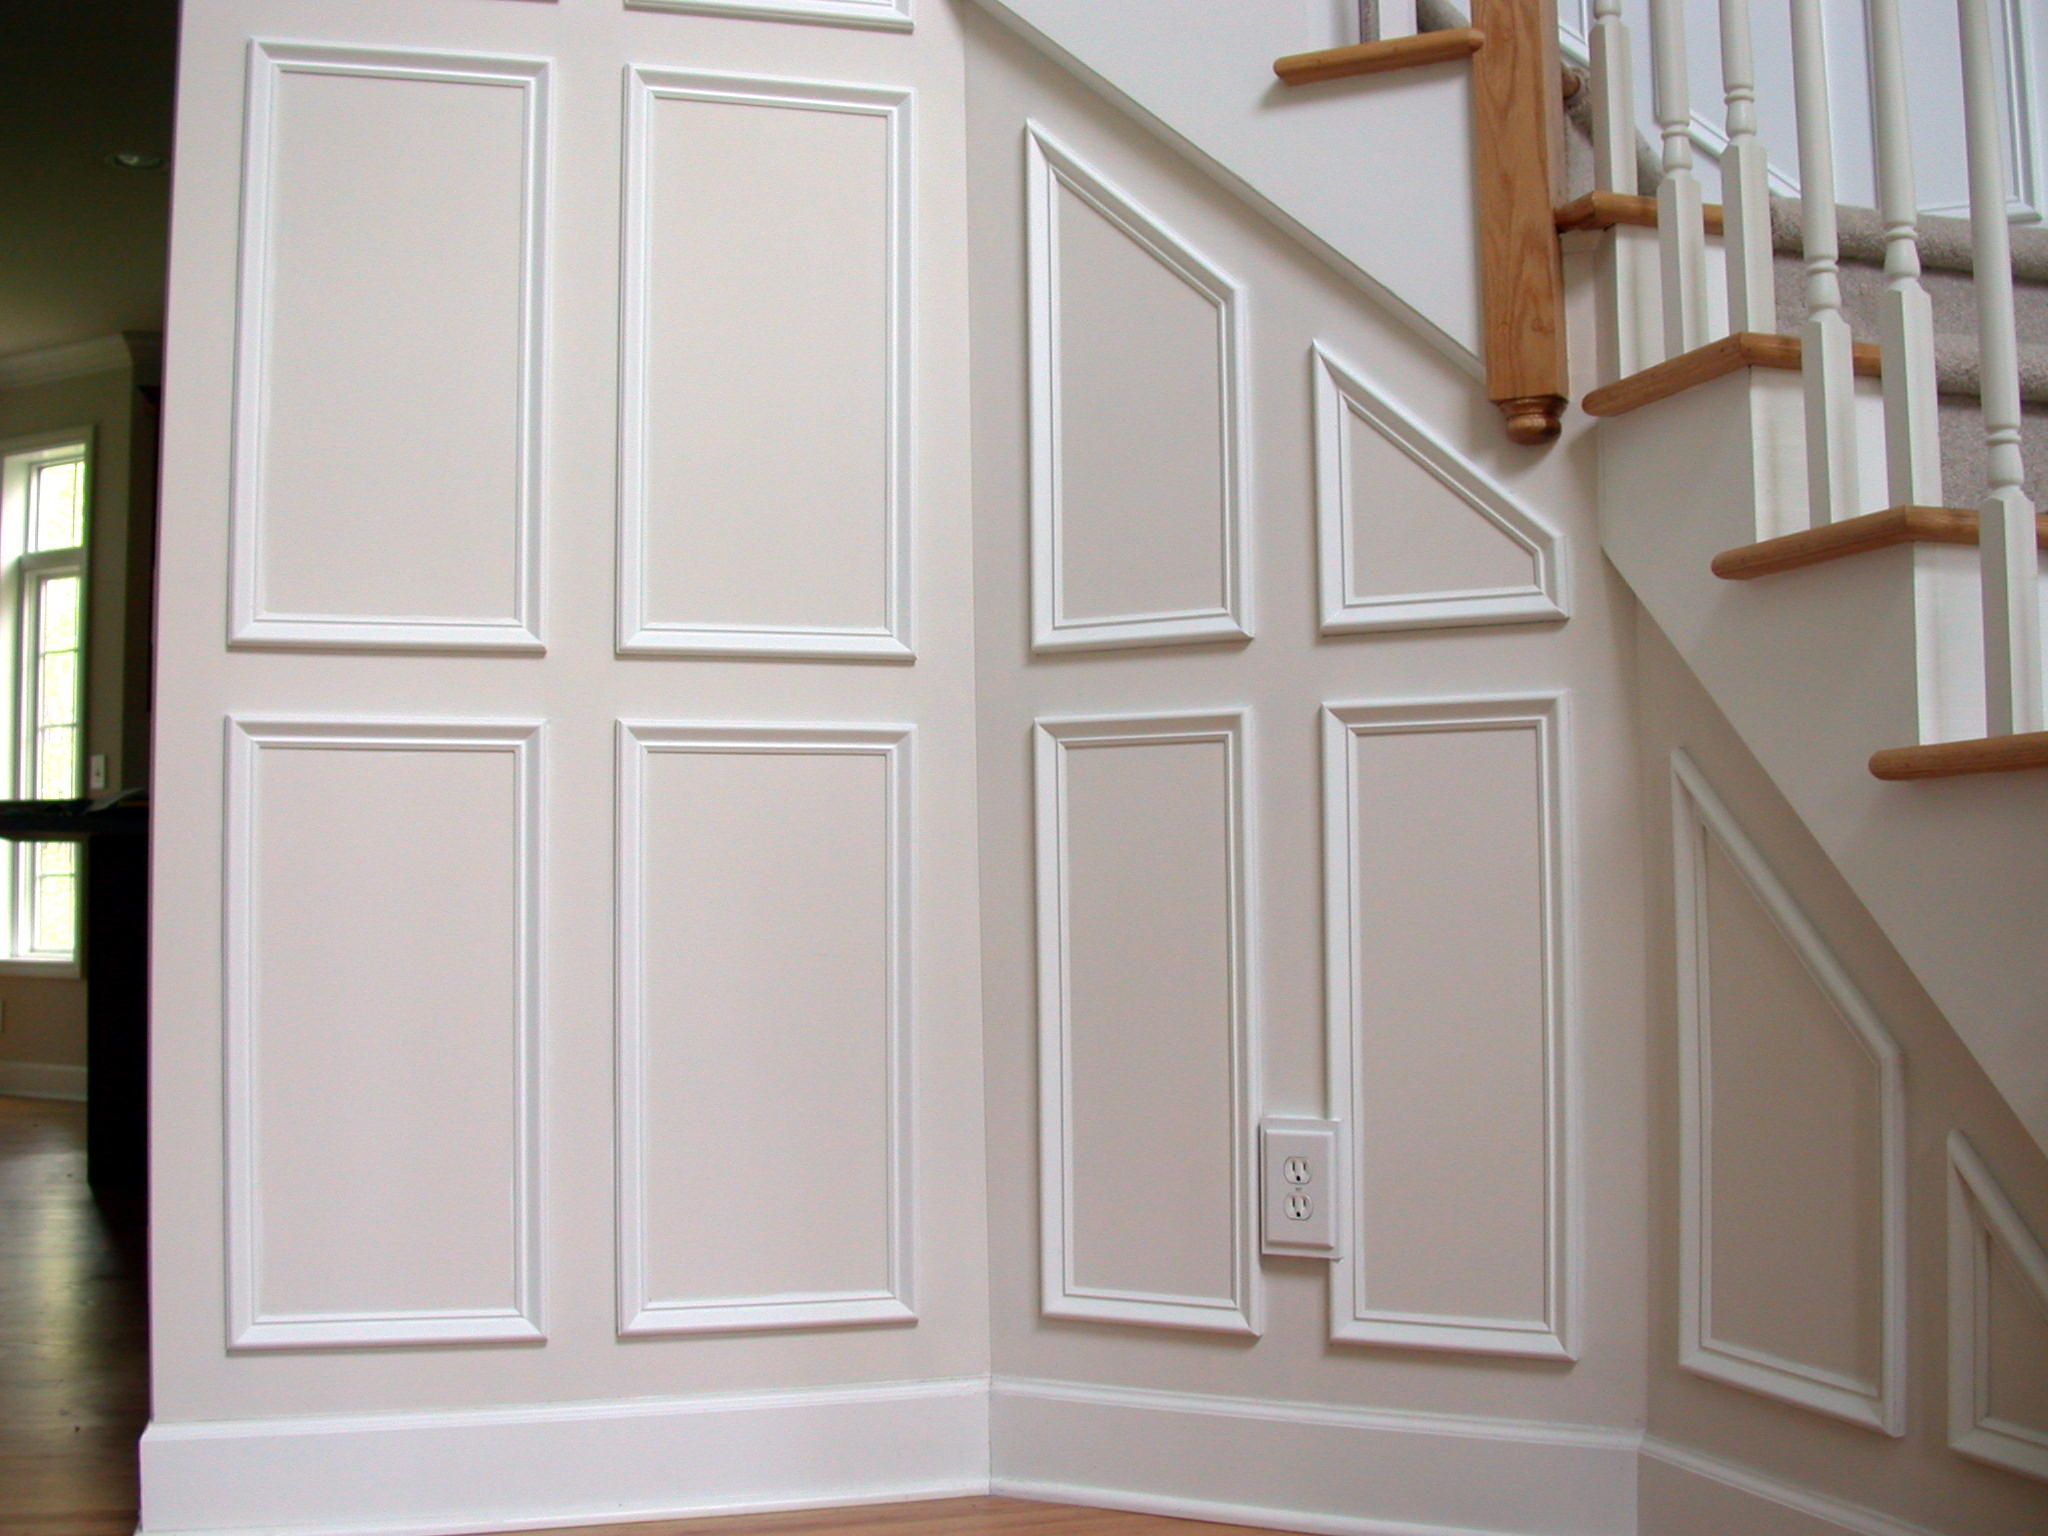 Wall Trim Molding Ideas